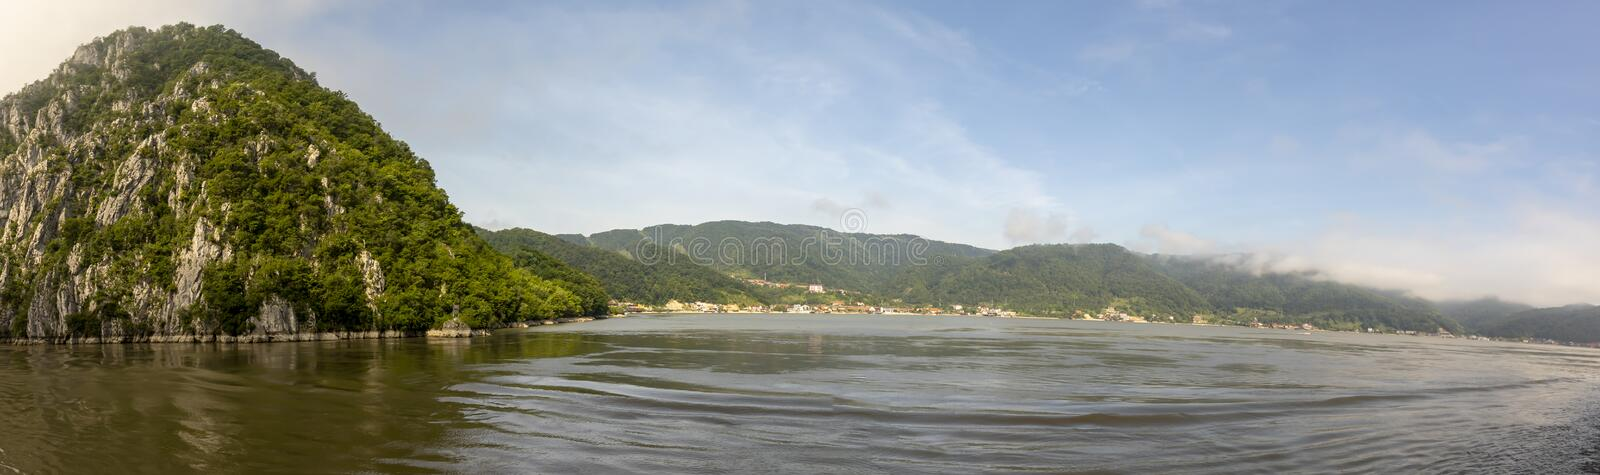 Coastal Romanian town in Iron Gate. Coastal Romanian Town the Iron Gate gorges on the Danube River between Serbia and Romania stock images